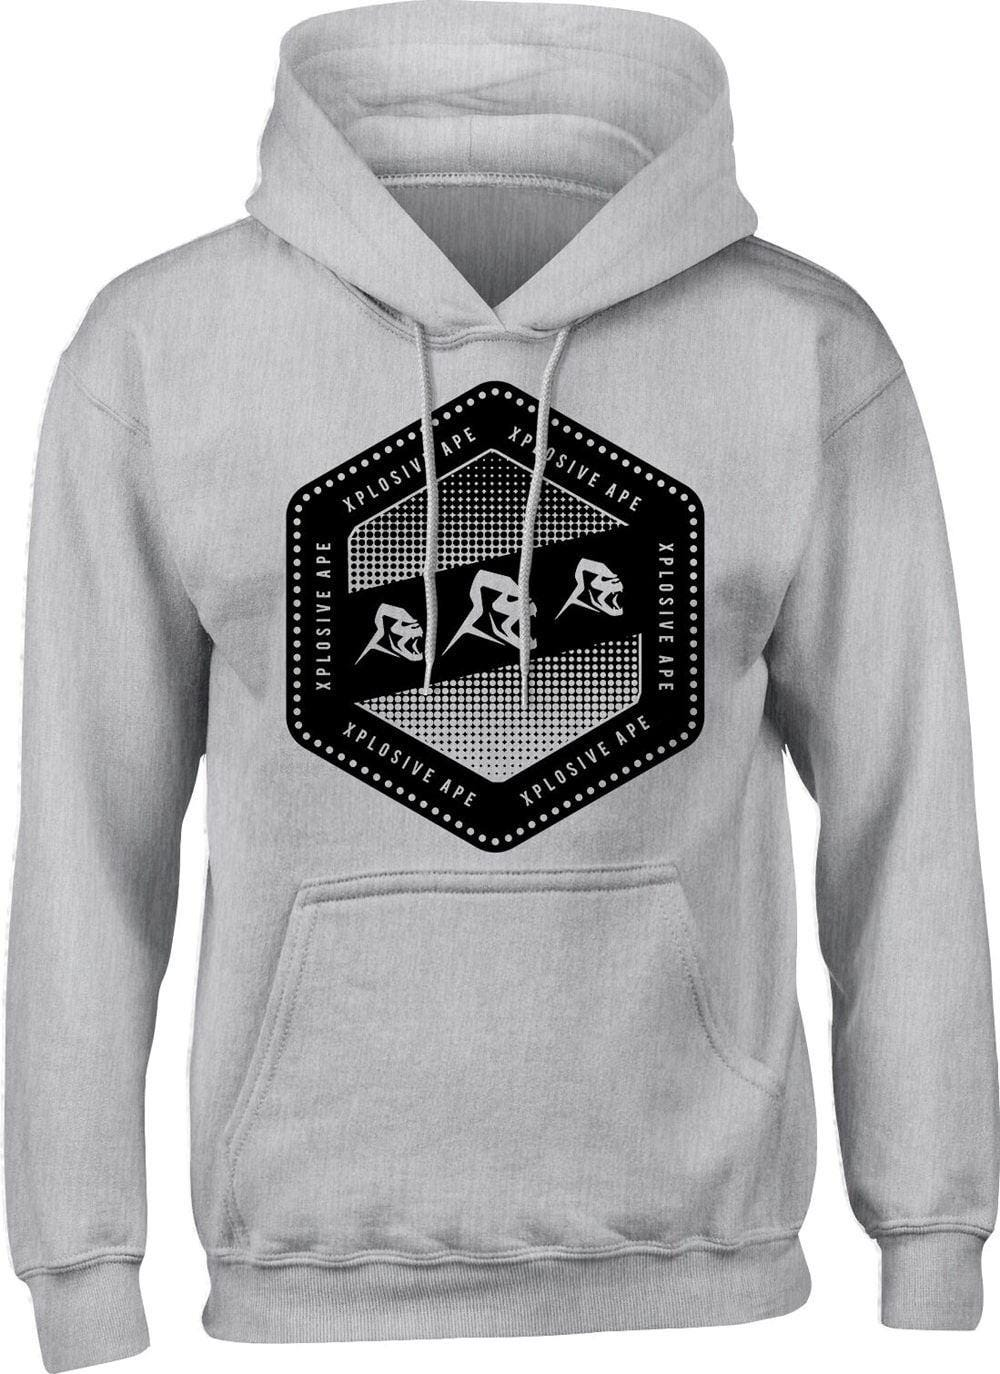 Clothing & Accessories Xplosive Ape Raze Hoody With Pockets - Grey|5XL